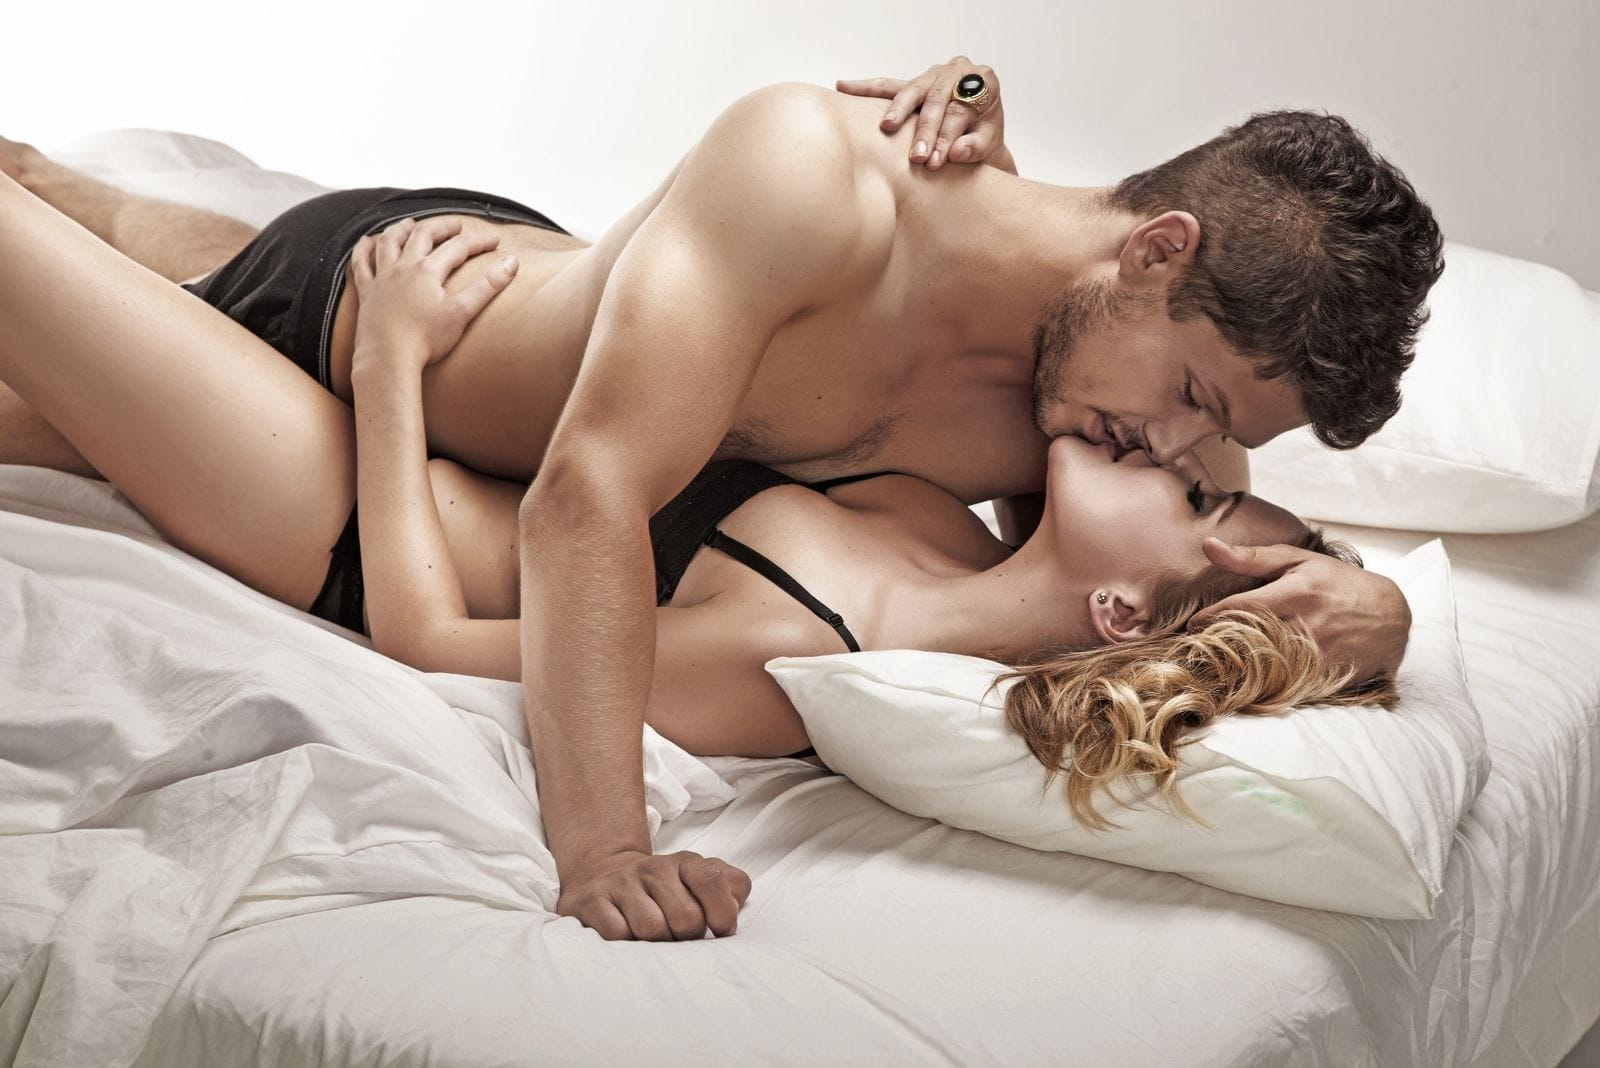 sexy young couple making love on top of the bed inside the bedroom